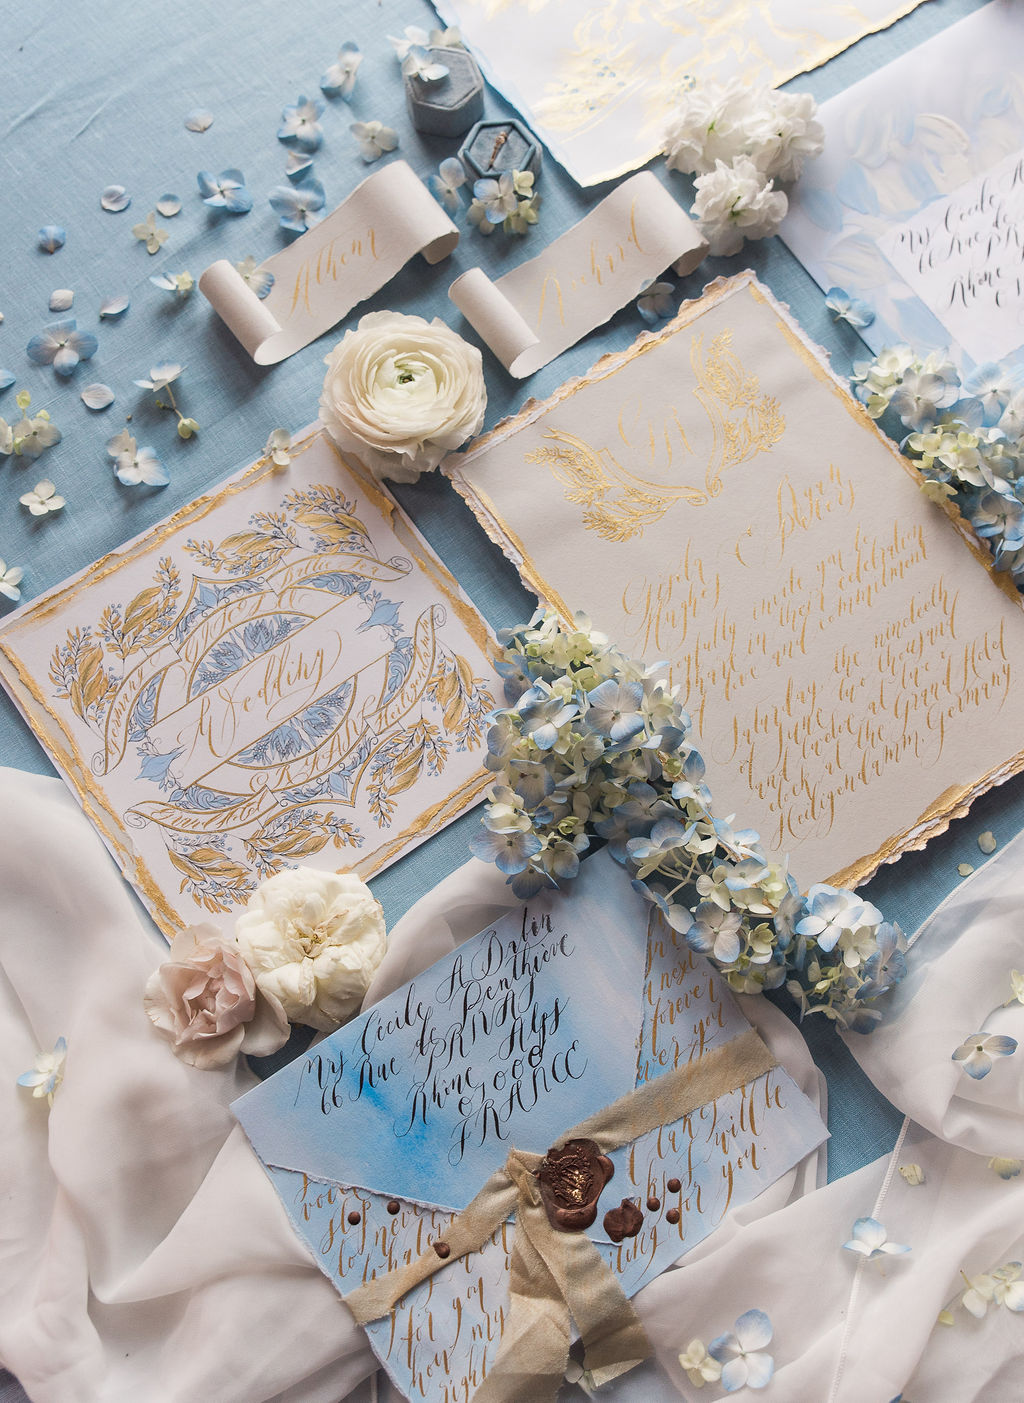 Romantic, blue and gold luxury handmade wedding stationery for a fine art wedding in Paris or the south of France